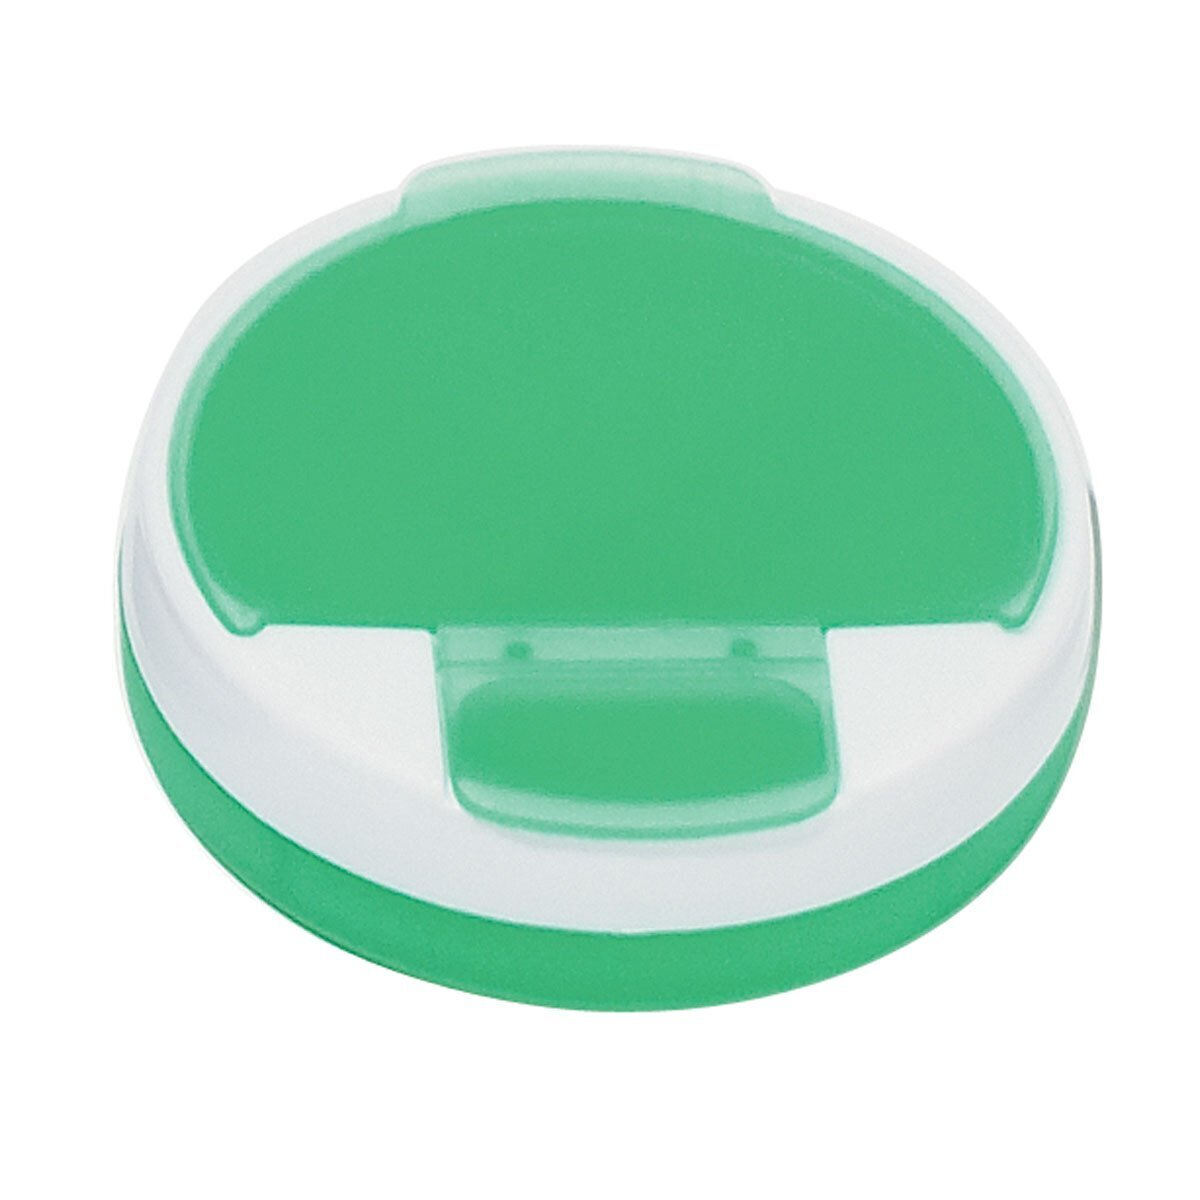 Round Travel Pill Box, Four Compartment